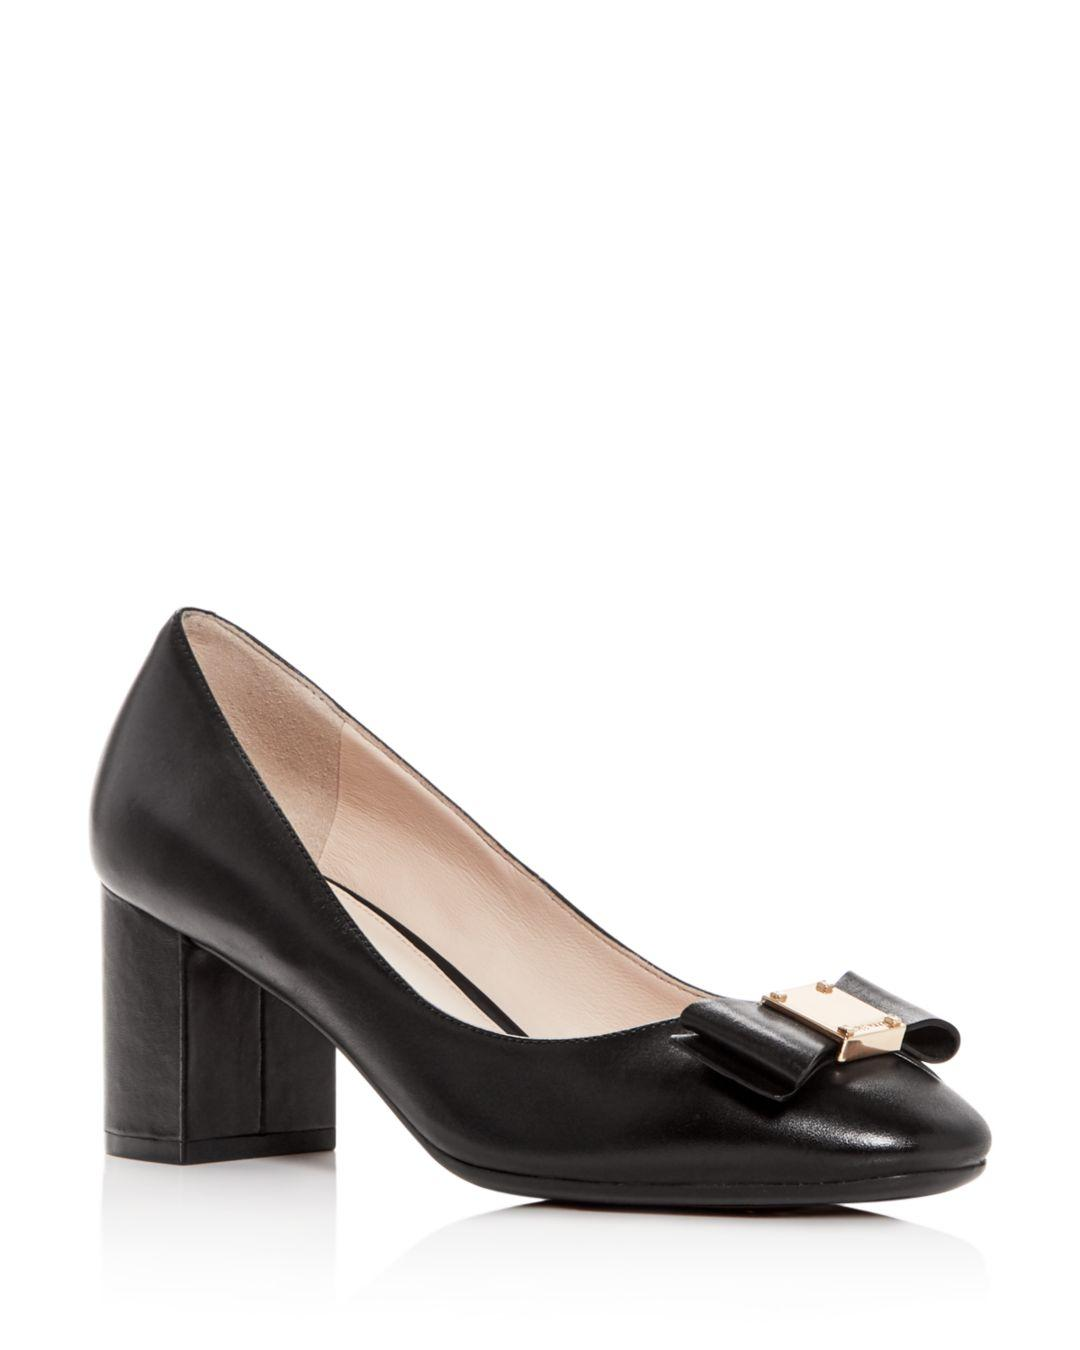 33783b79040 Lyst - Cole Haan Tali Bow Pumps in Black - Save 60%